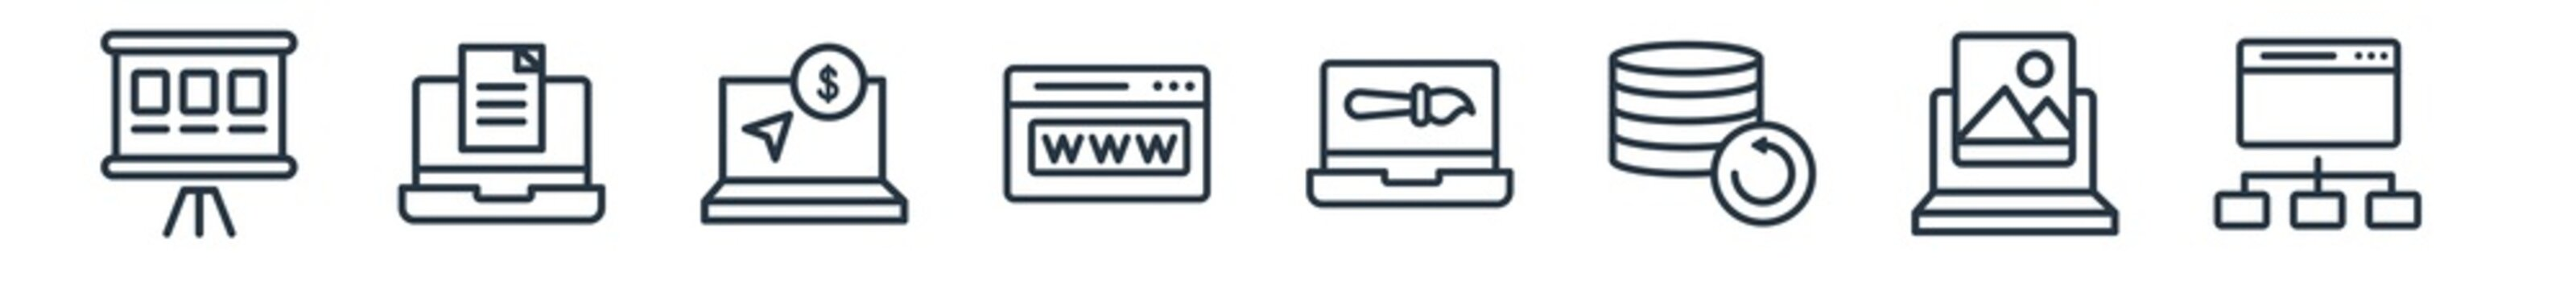 linear set of seo & web outline icons. line vector icons such as whiteboard, blogging, pay per click, domain registration, de, sitemap vector illustration.